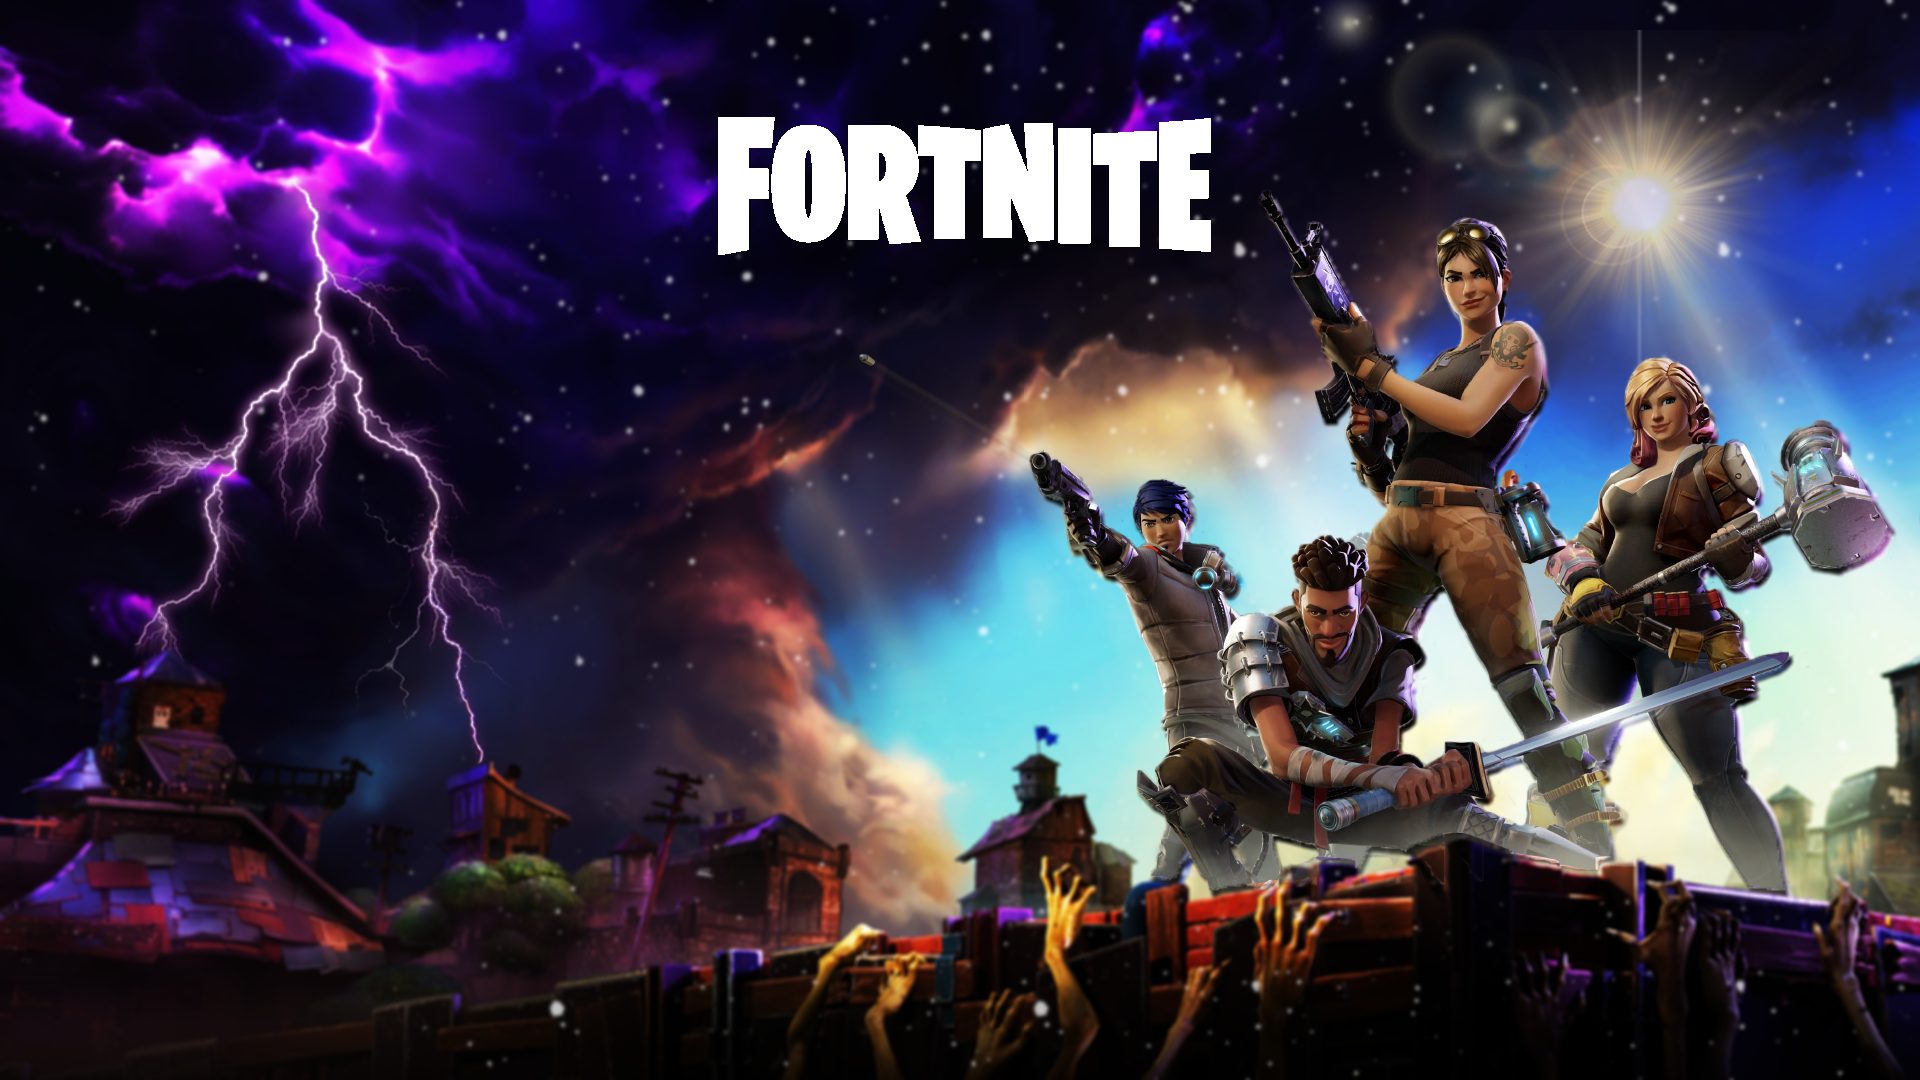 Battle royale fortnite wallpaper hd 4k 8k - 4k fortnite wallpaper ...